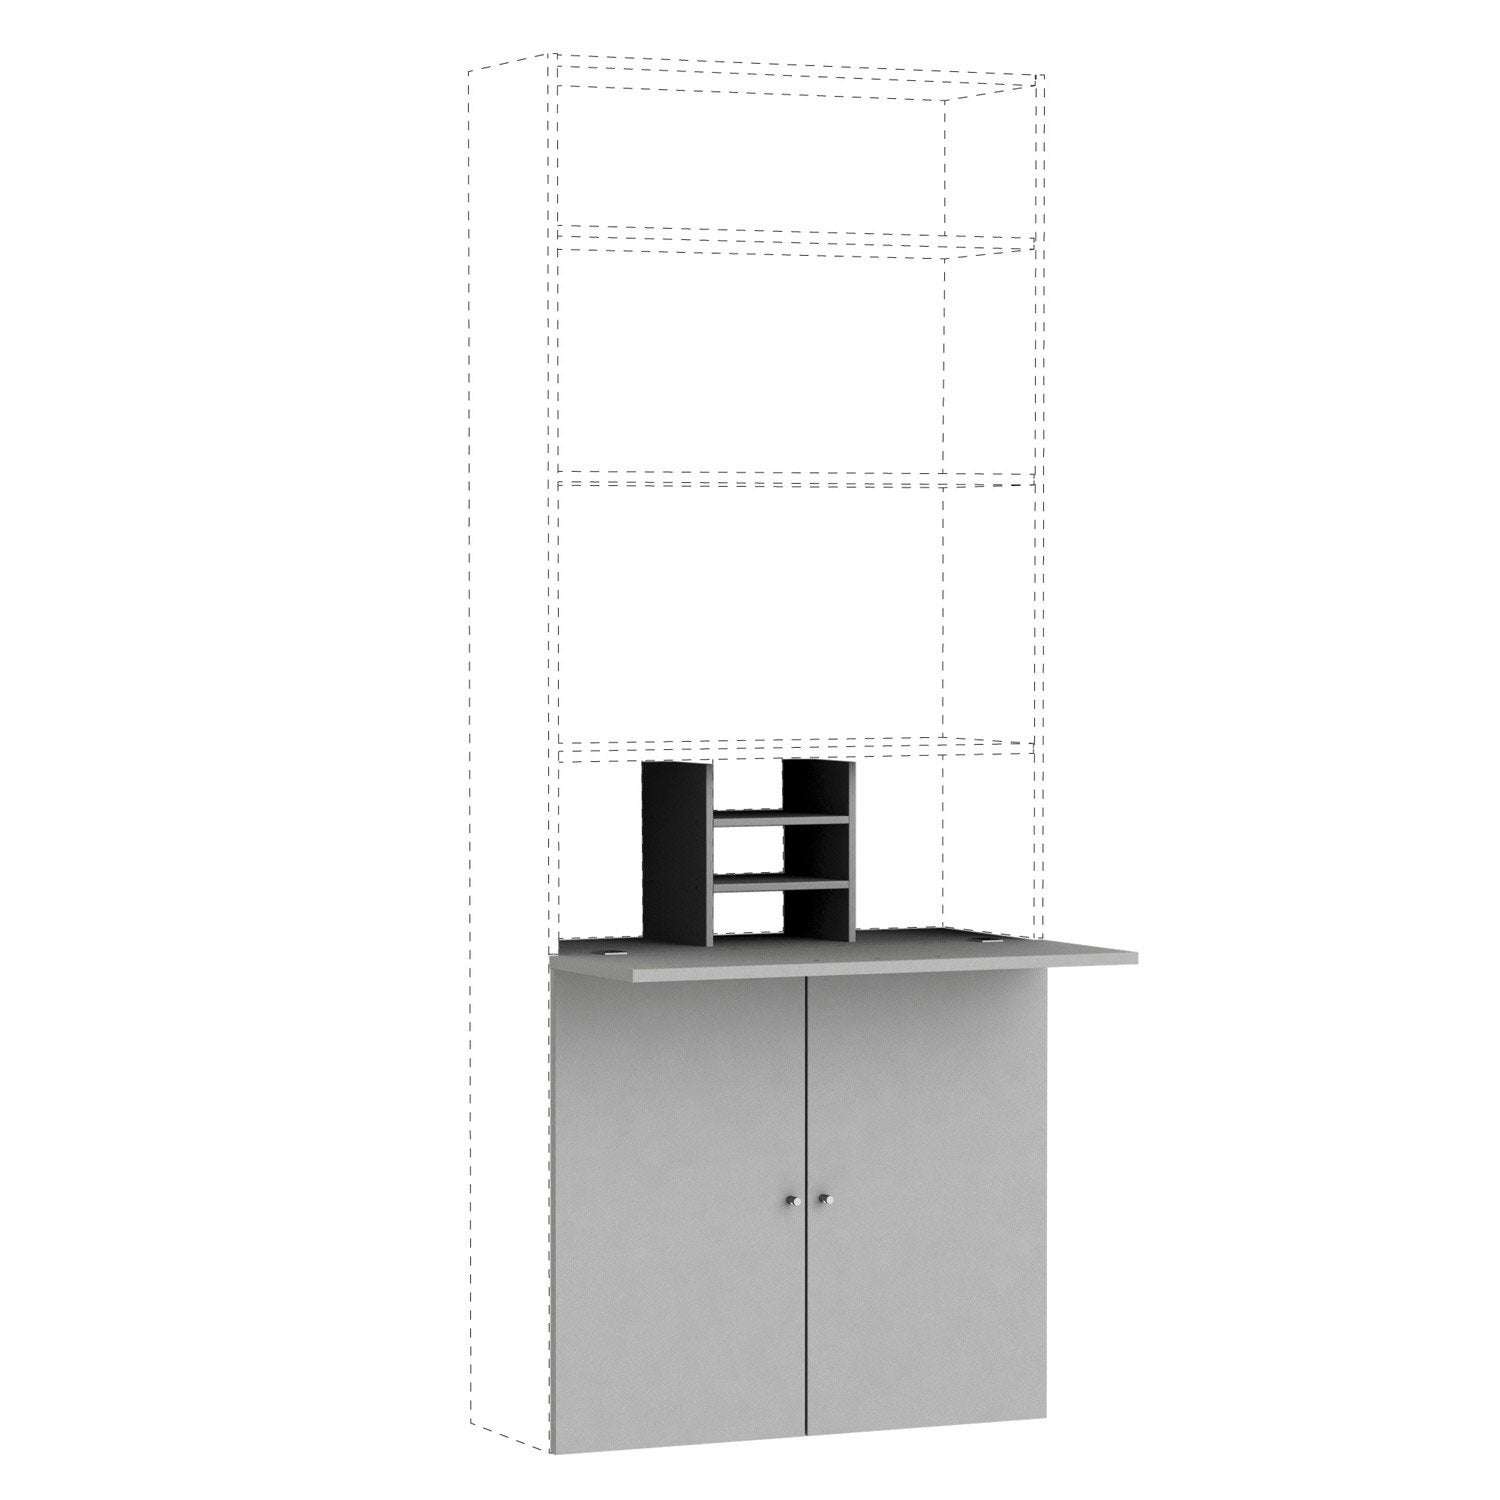 kit bureau gris spaceo home h 1 6 x x p 1 6 cm leroy merlin. Black Bedroom Furniture Sets. Home Design Ideas